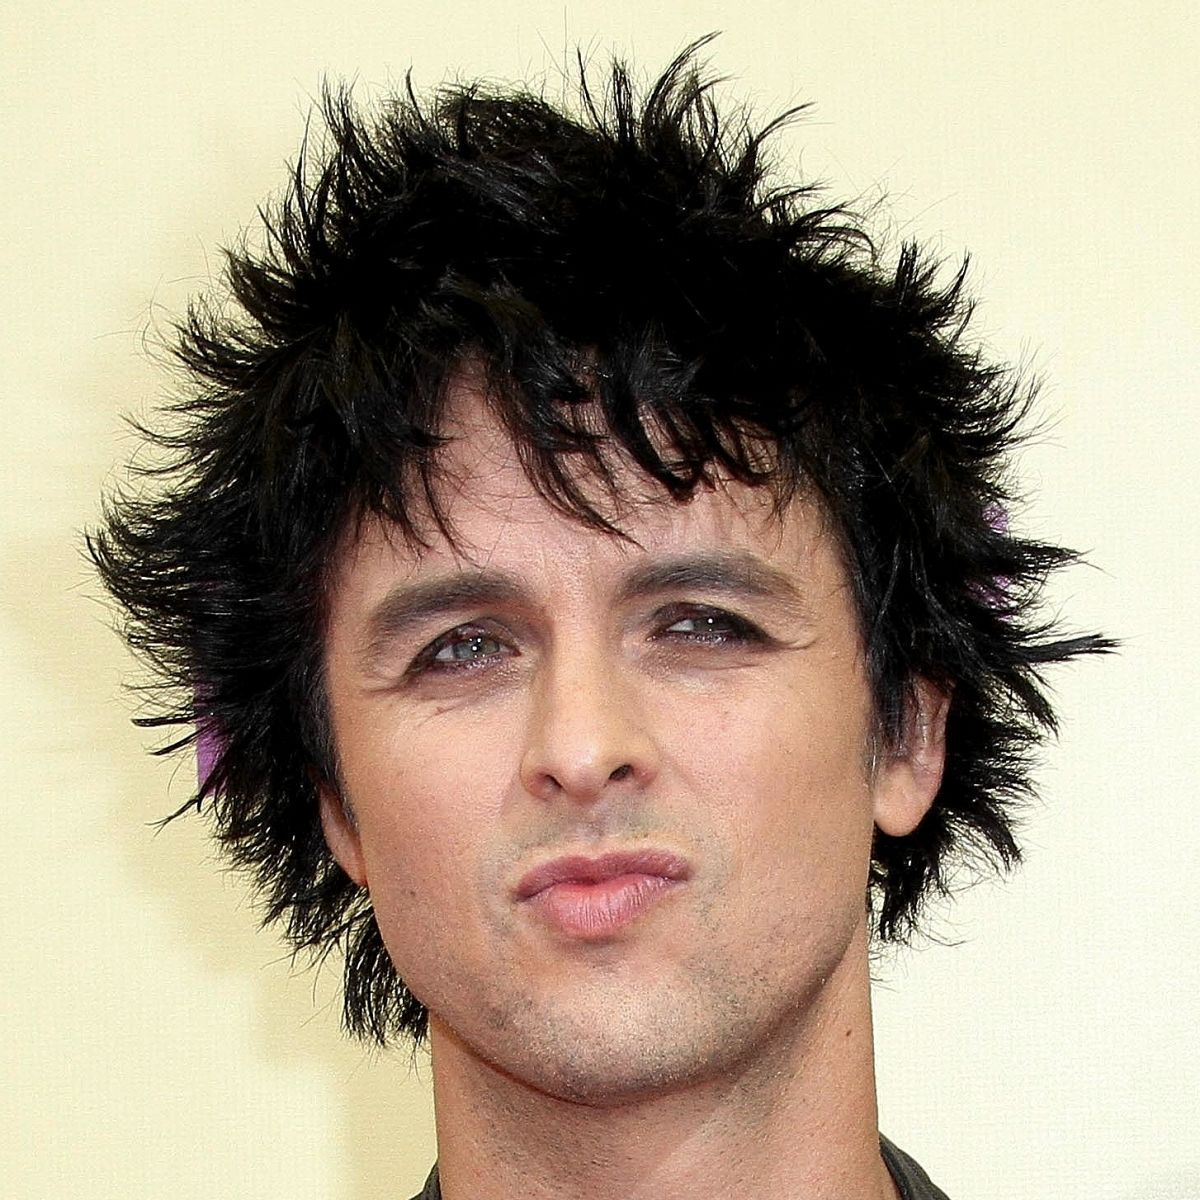 Billie Joe Armstrong is the lead singer and guitarist for Green Day, a popular punk rock band. Learn more about his music and life at Biography.com.